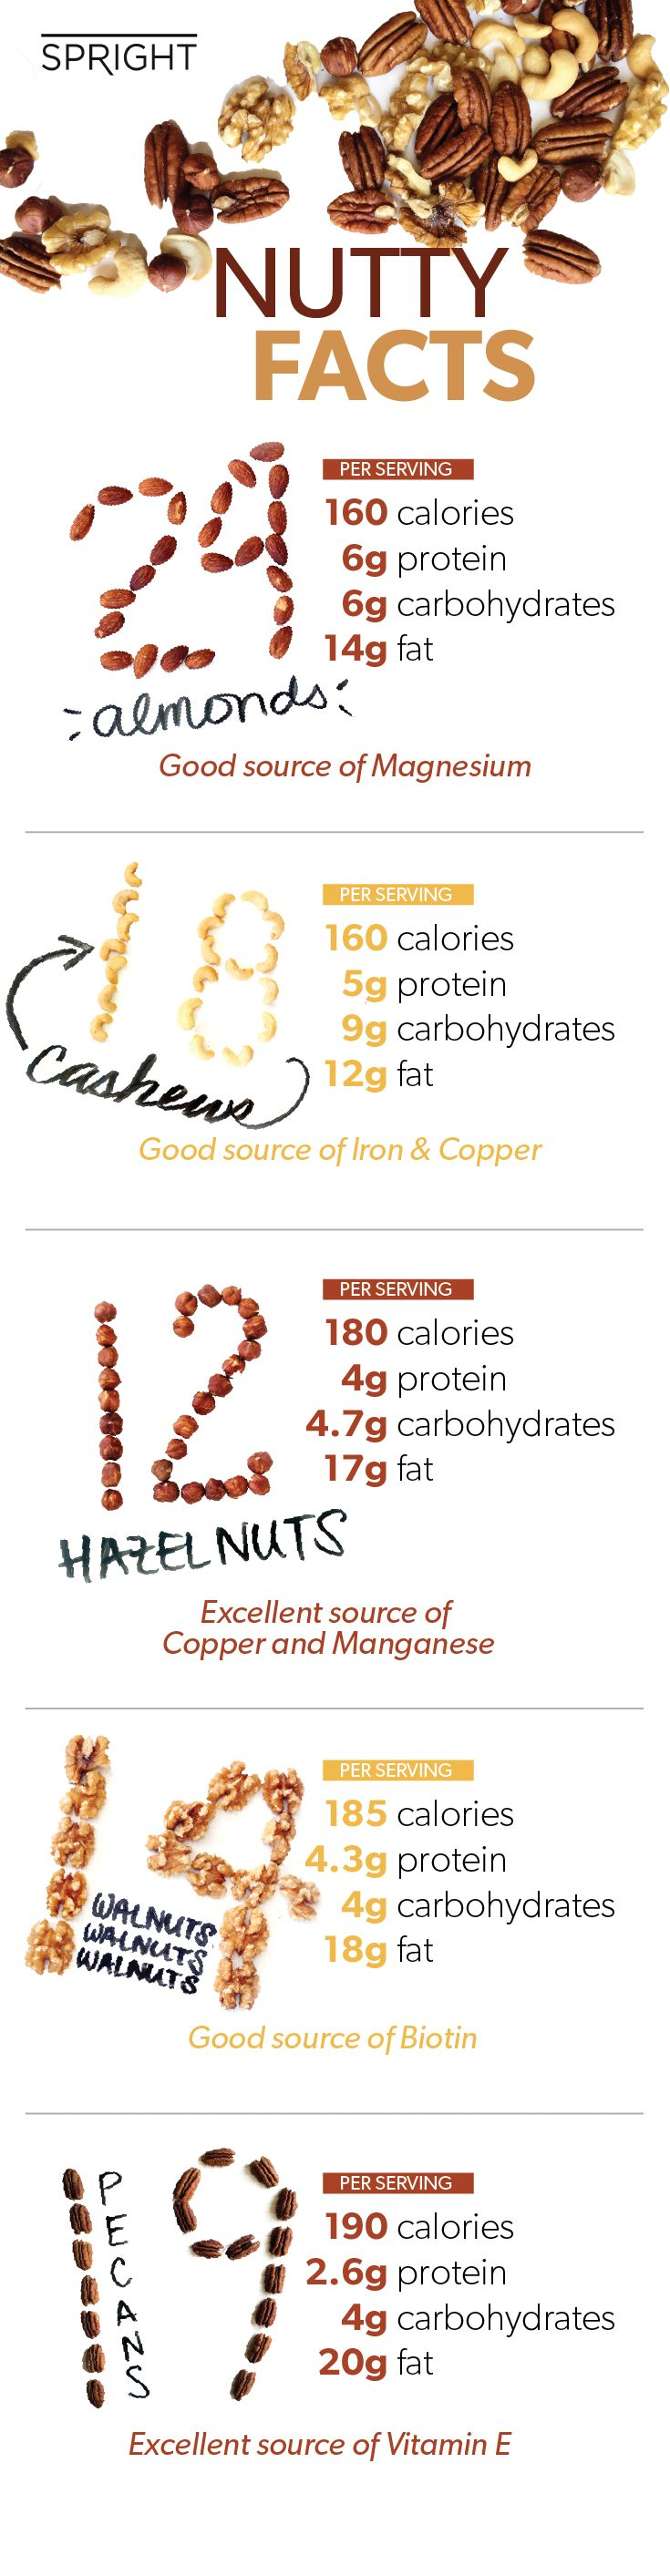 A handful of nuts is the perfect mid-afternoon or pre-workout snack.